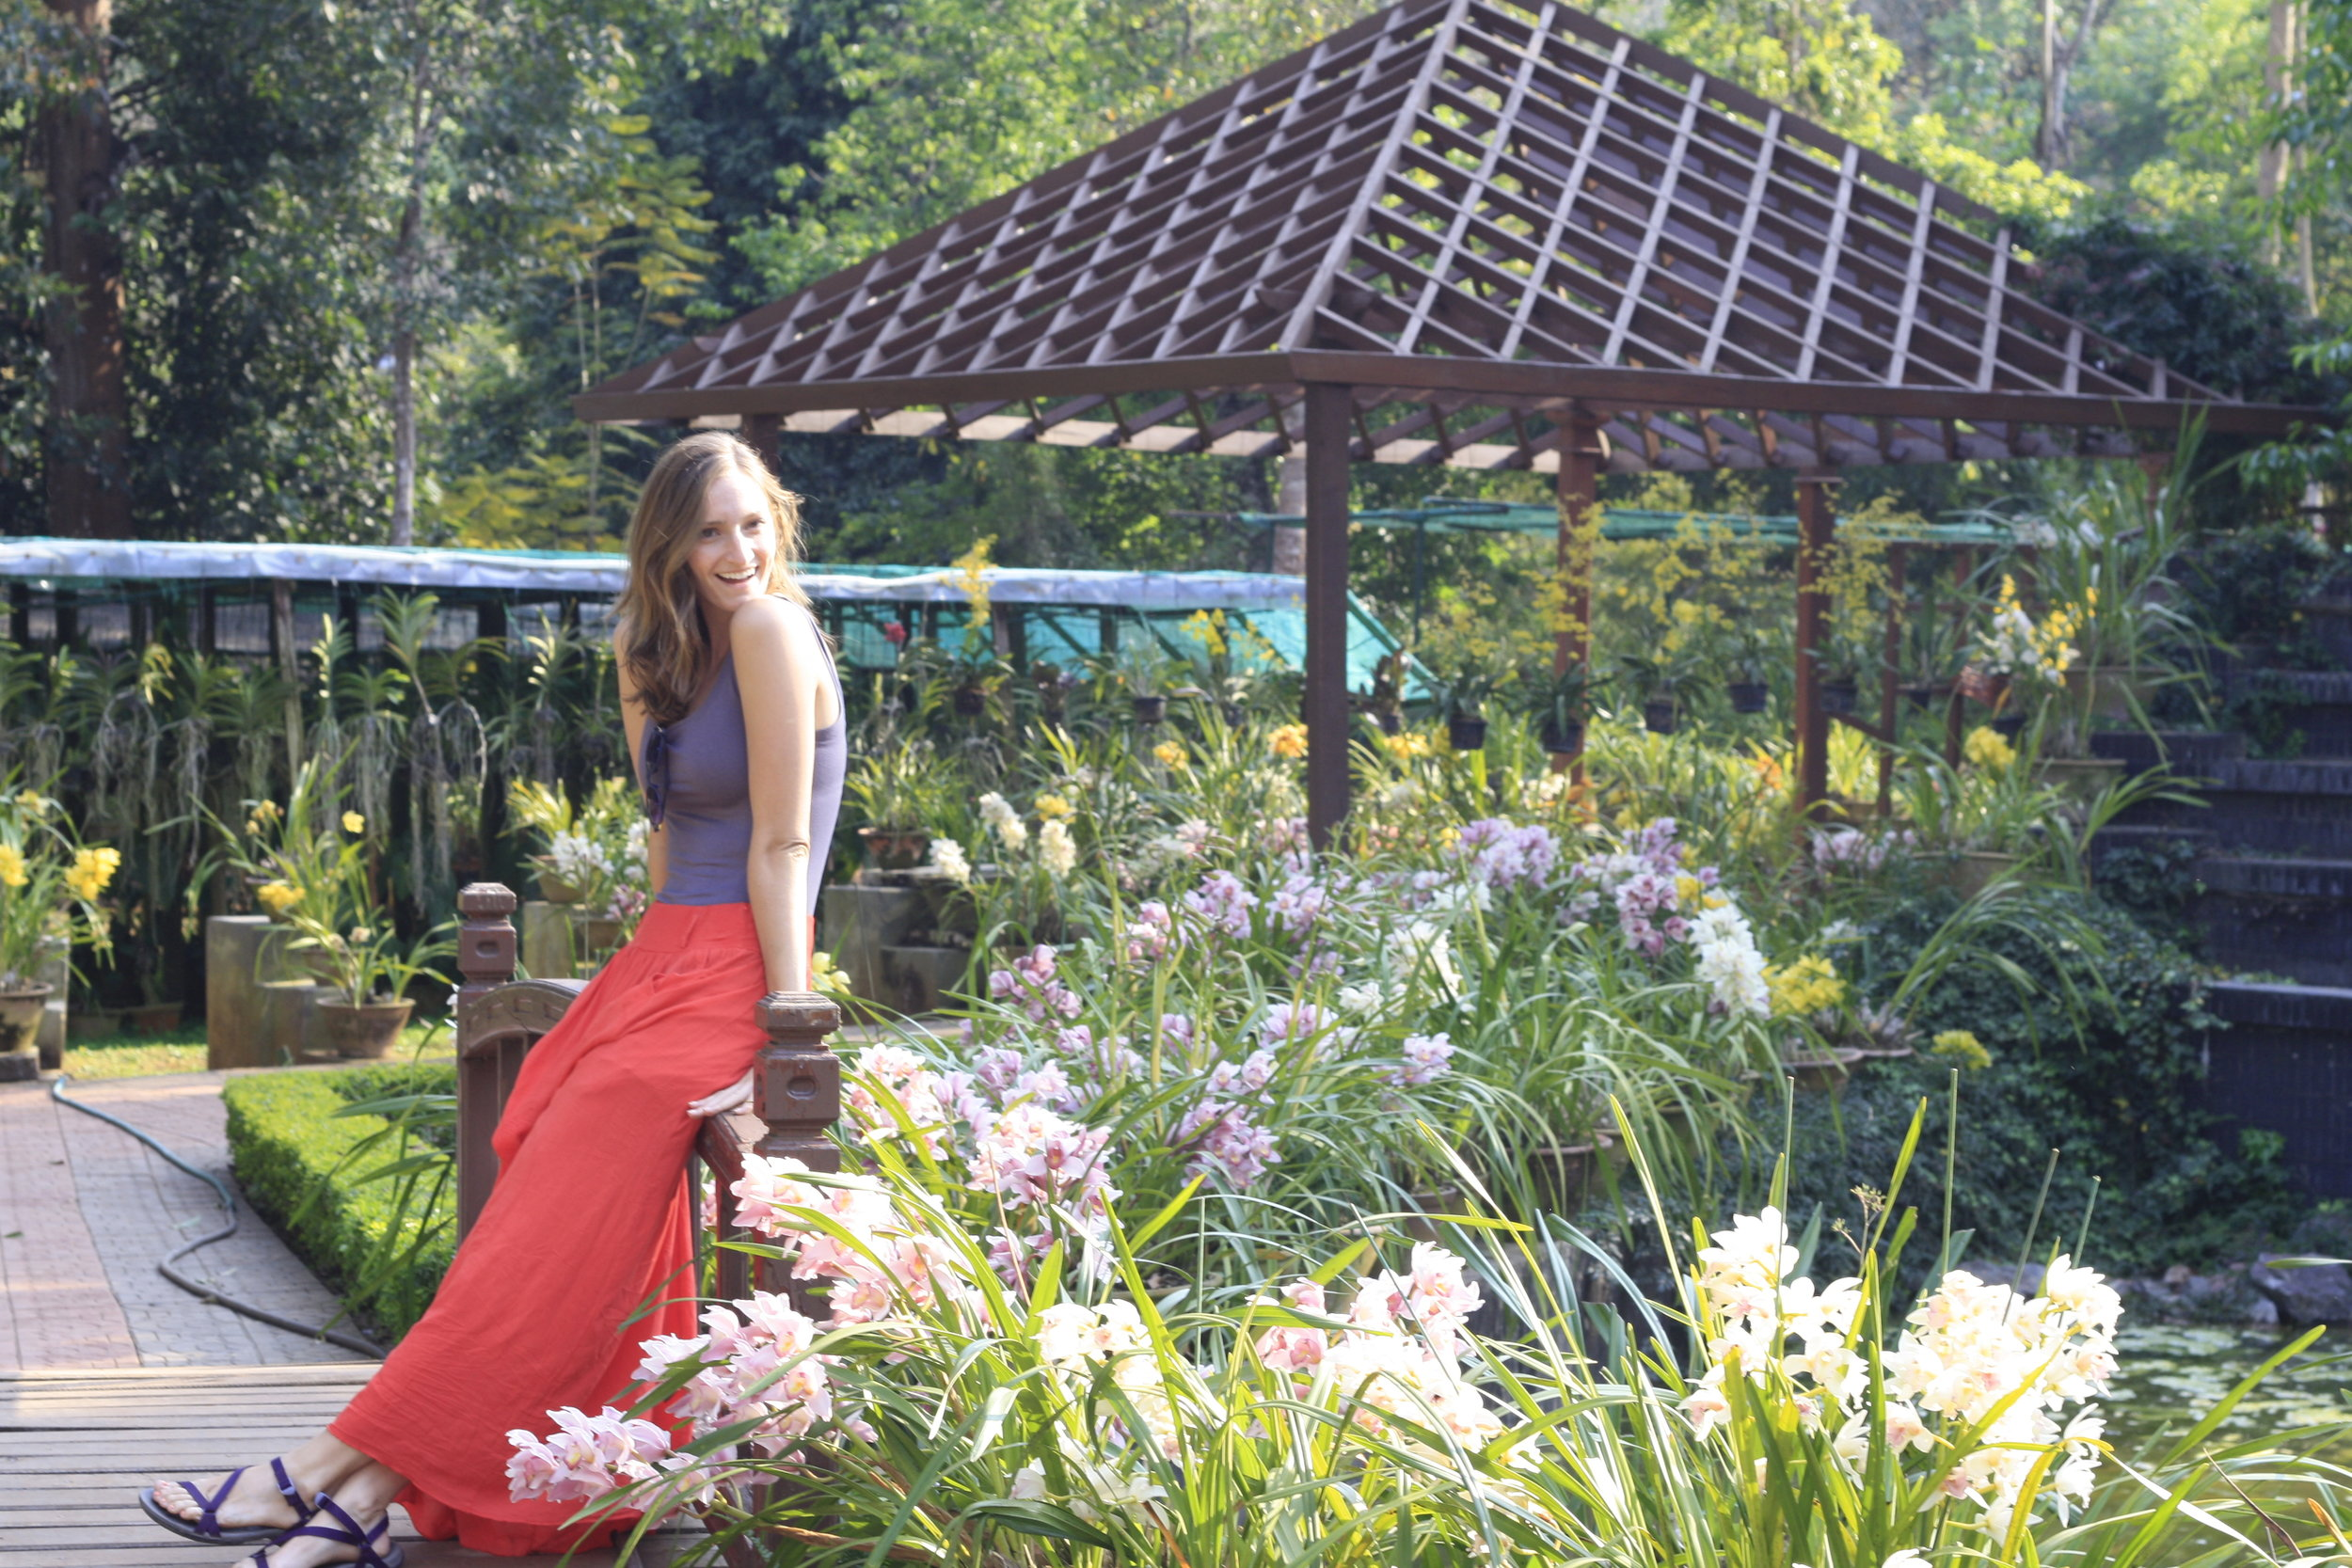 Orchids in the National Gardens in Pyin Oo Win